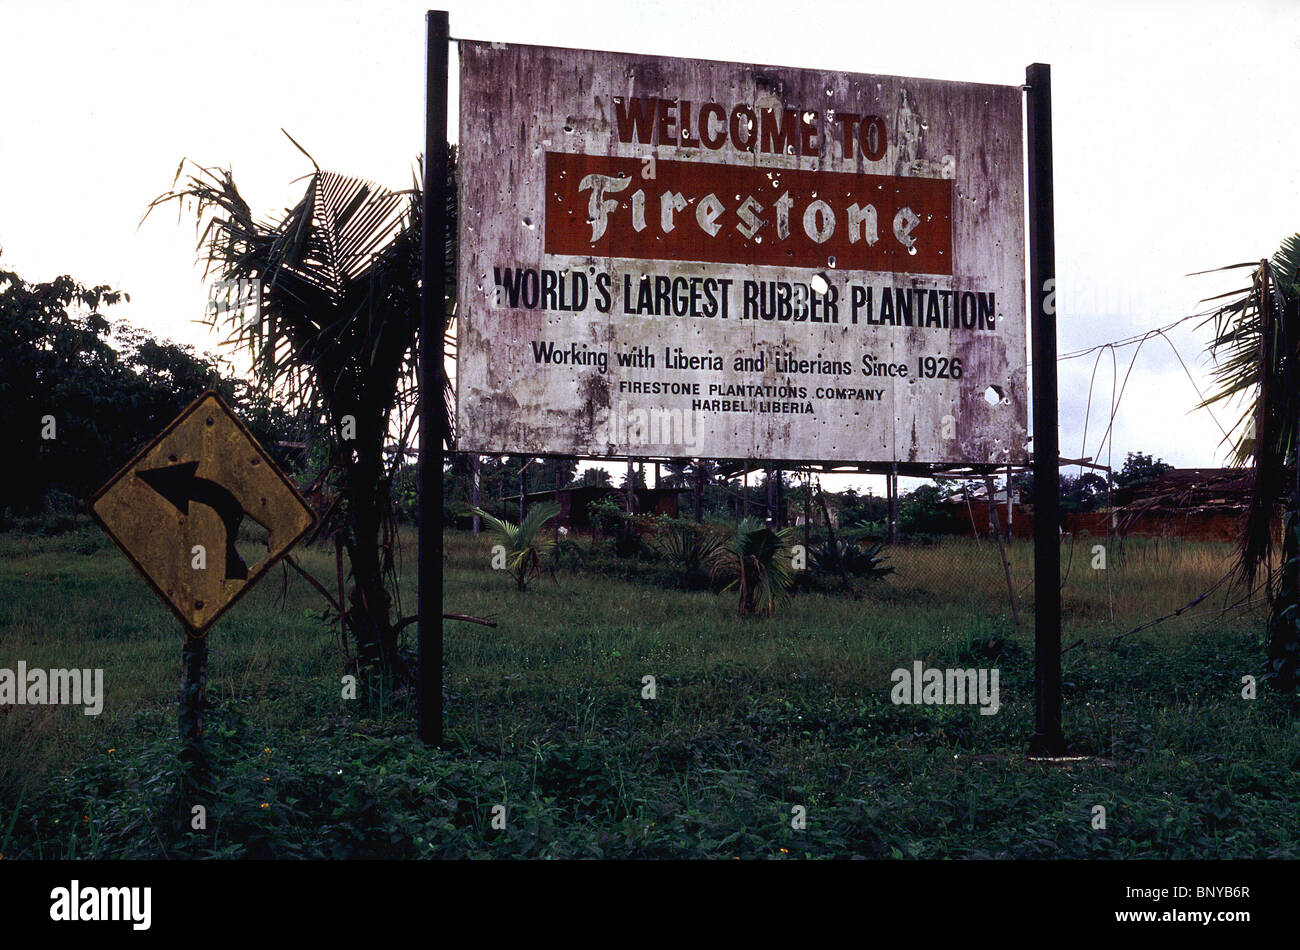 Abandoned rubber plantation in Liberia owned by Firestone - Stock Image